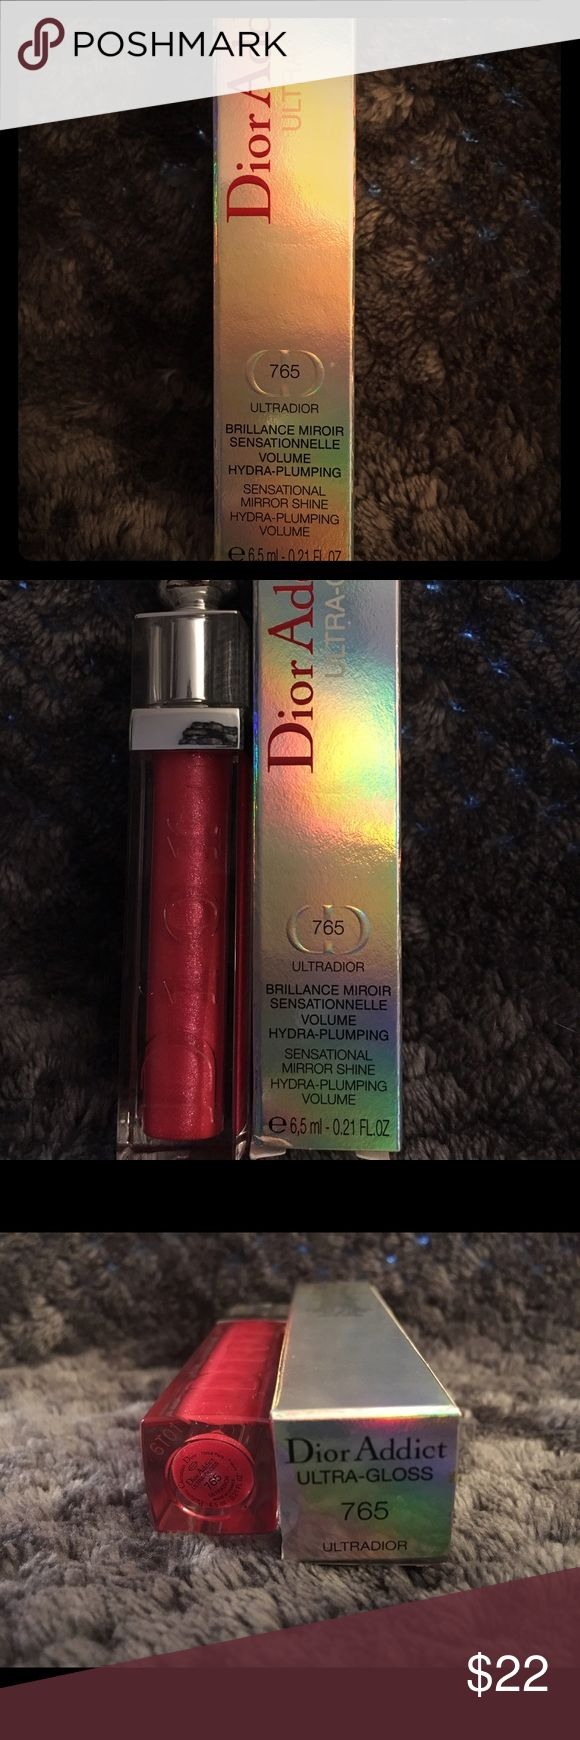 Dior Addict Ultra Gloss Dior Addict Ultra Gloss 765 new with tags Dior Makeup Lip Balm & Gloss